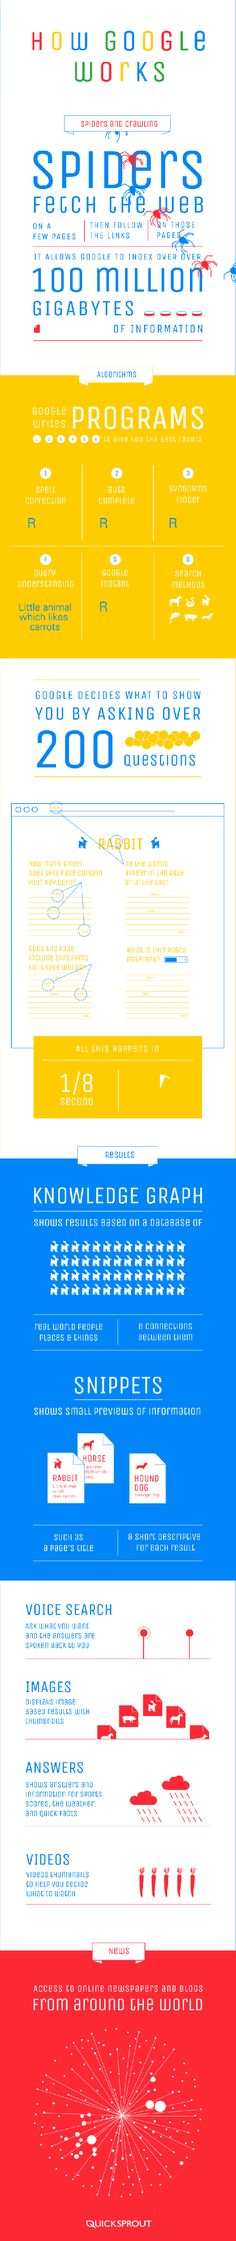 How Google Works How They Crawl and Rank Your Website #Infographic